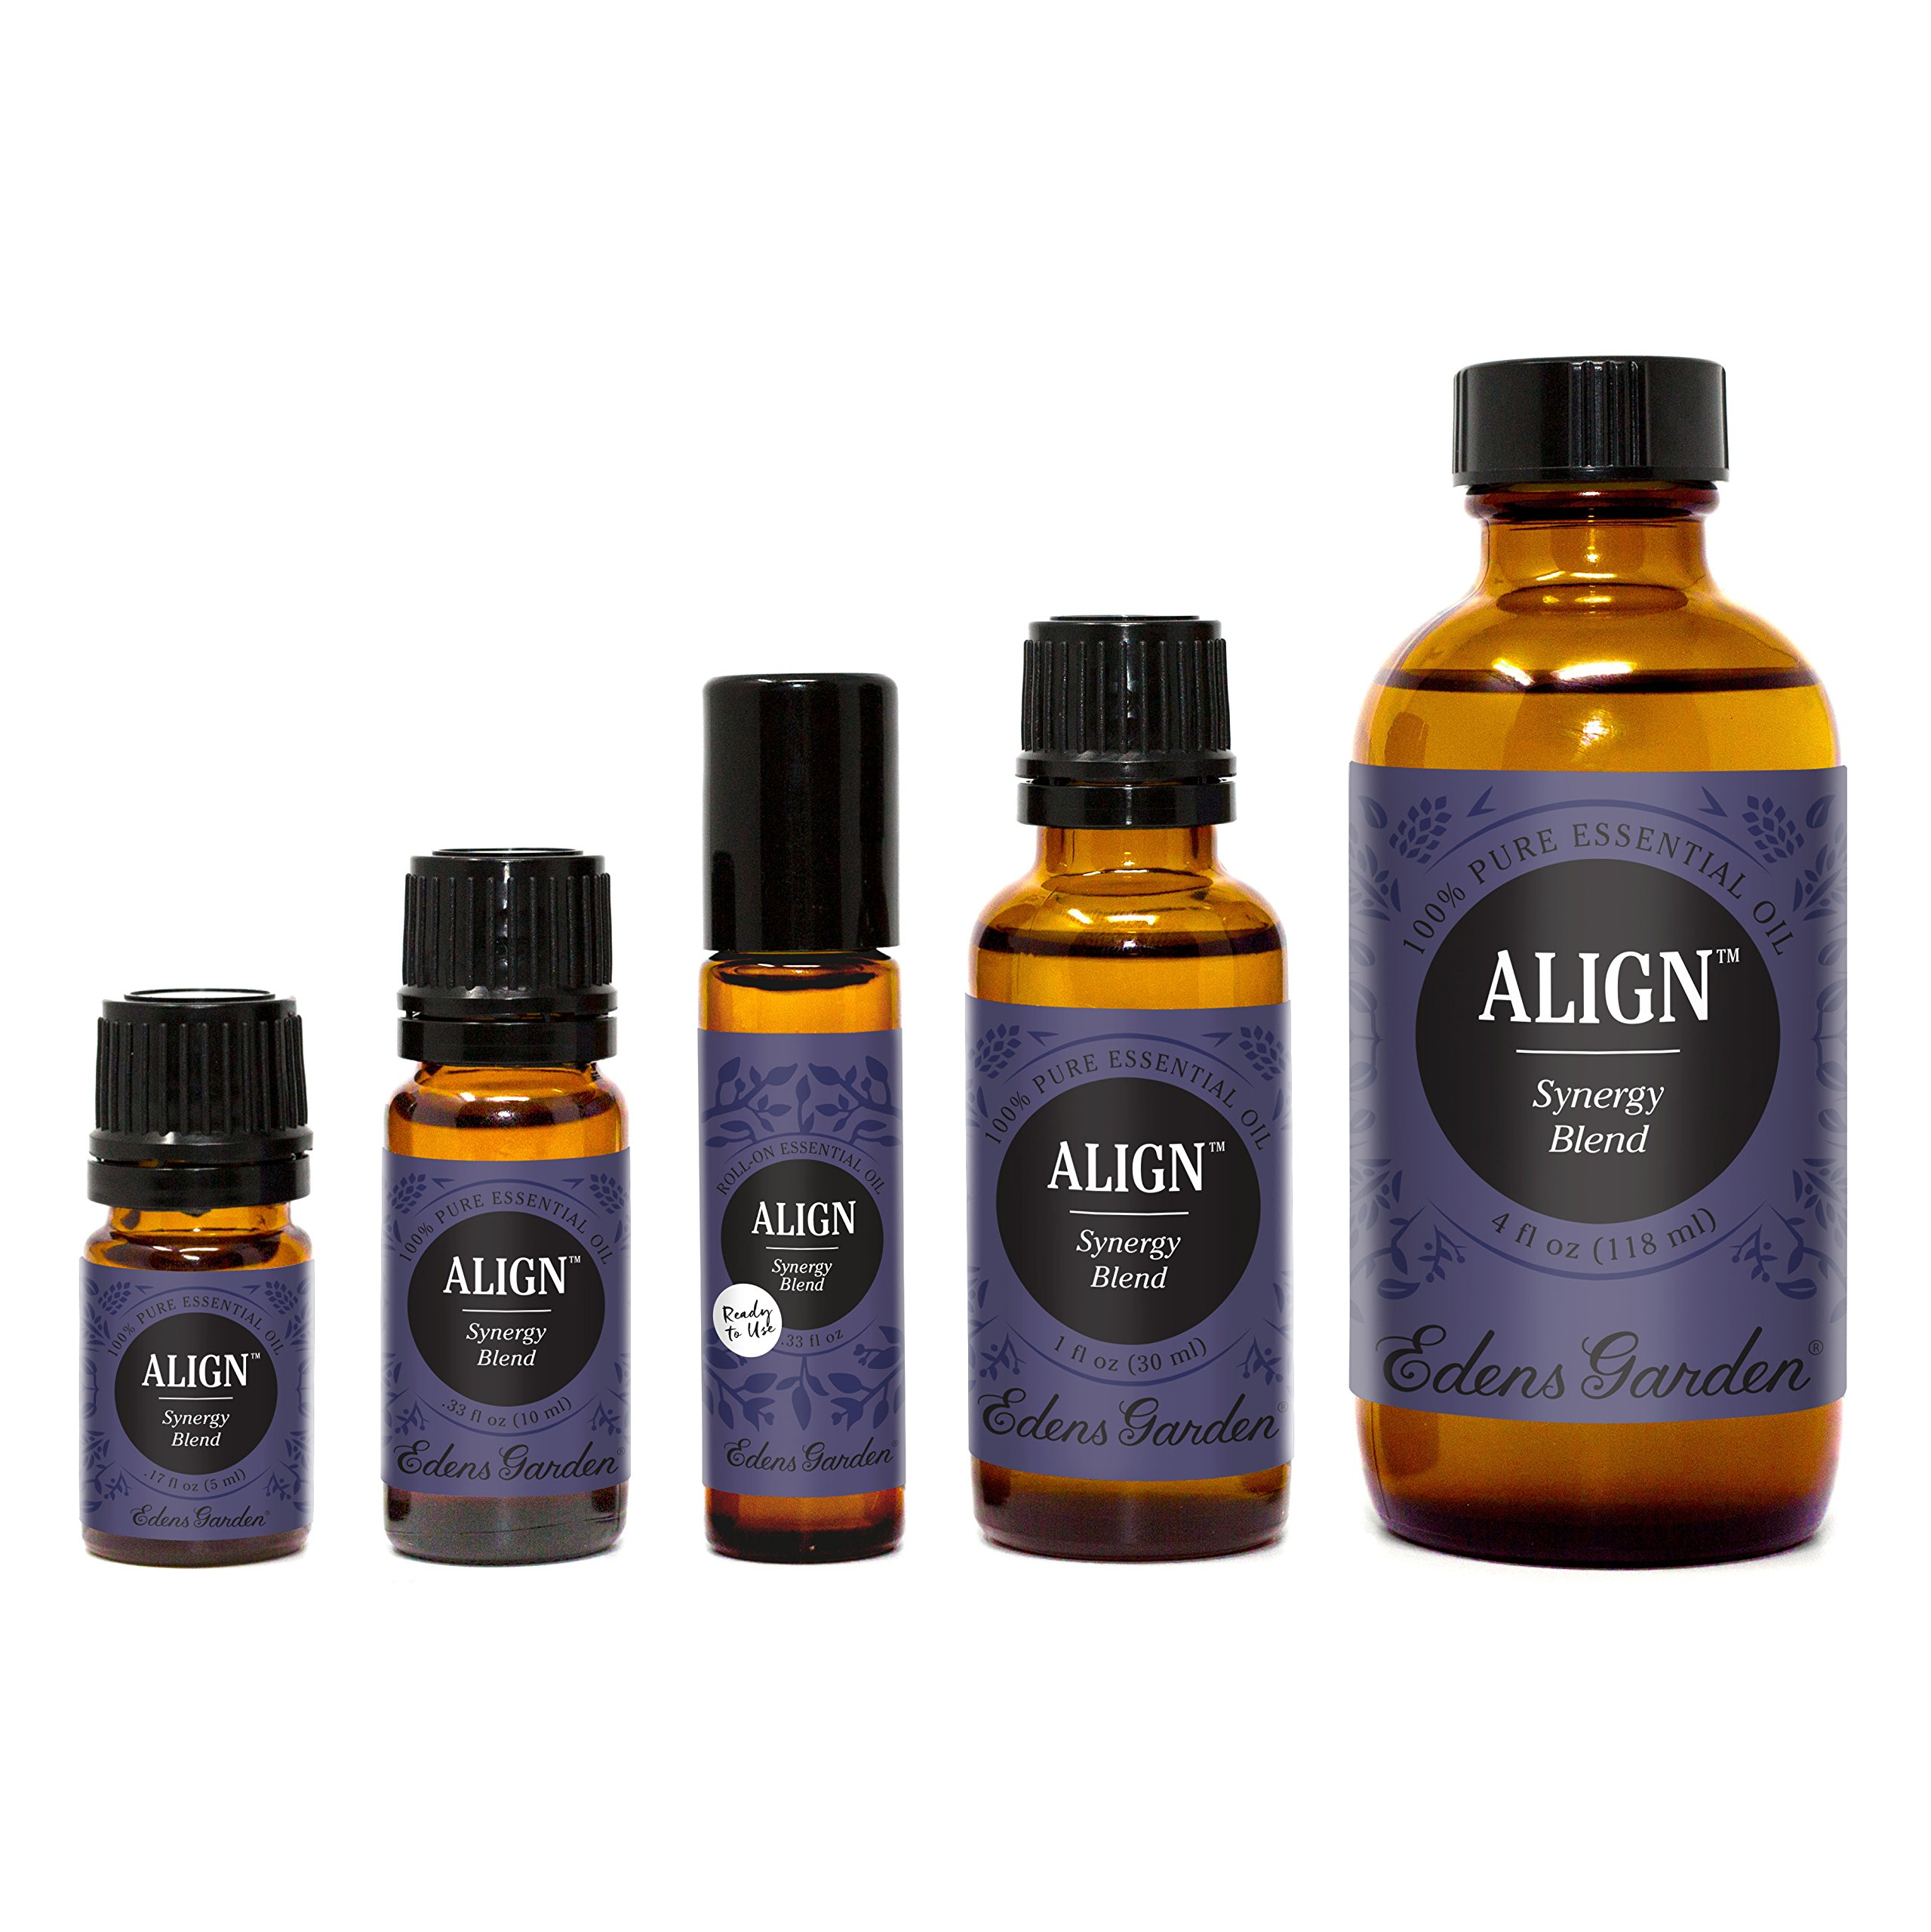 Edens Garden Align Essential Oil Synergy Blend, 100% Pure Therapeutic Grade (Highest Quality Aromatherapy Oils- Allergies & Anxiety), 10 ml by Edens Garden